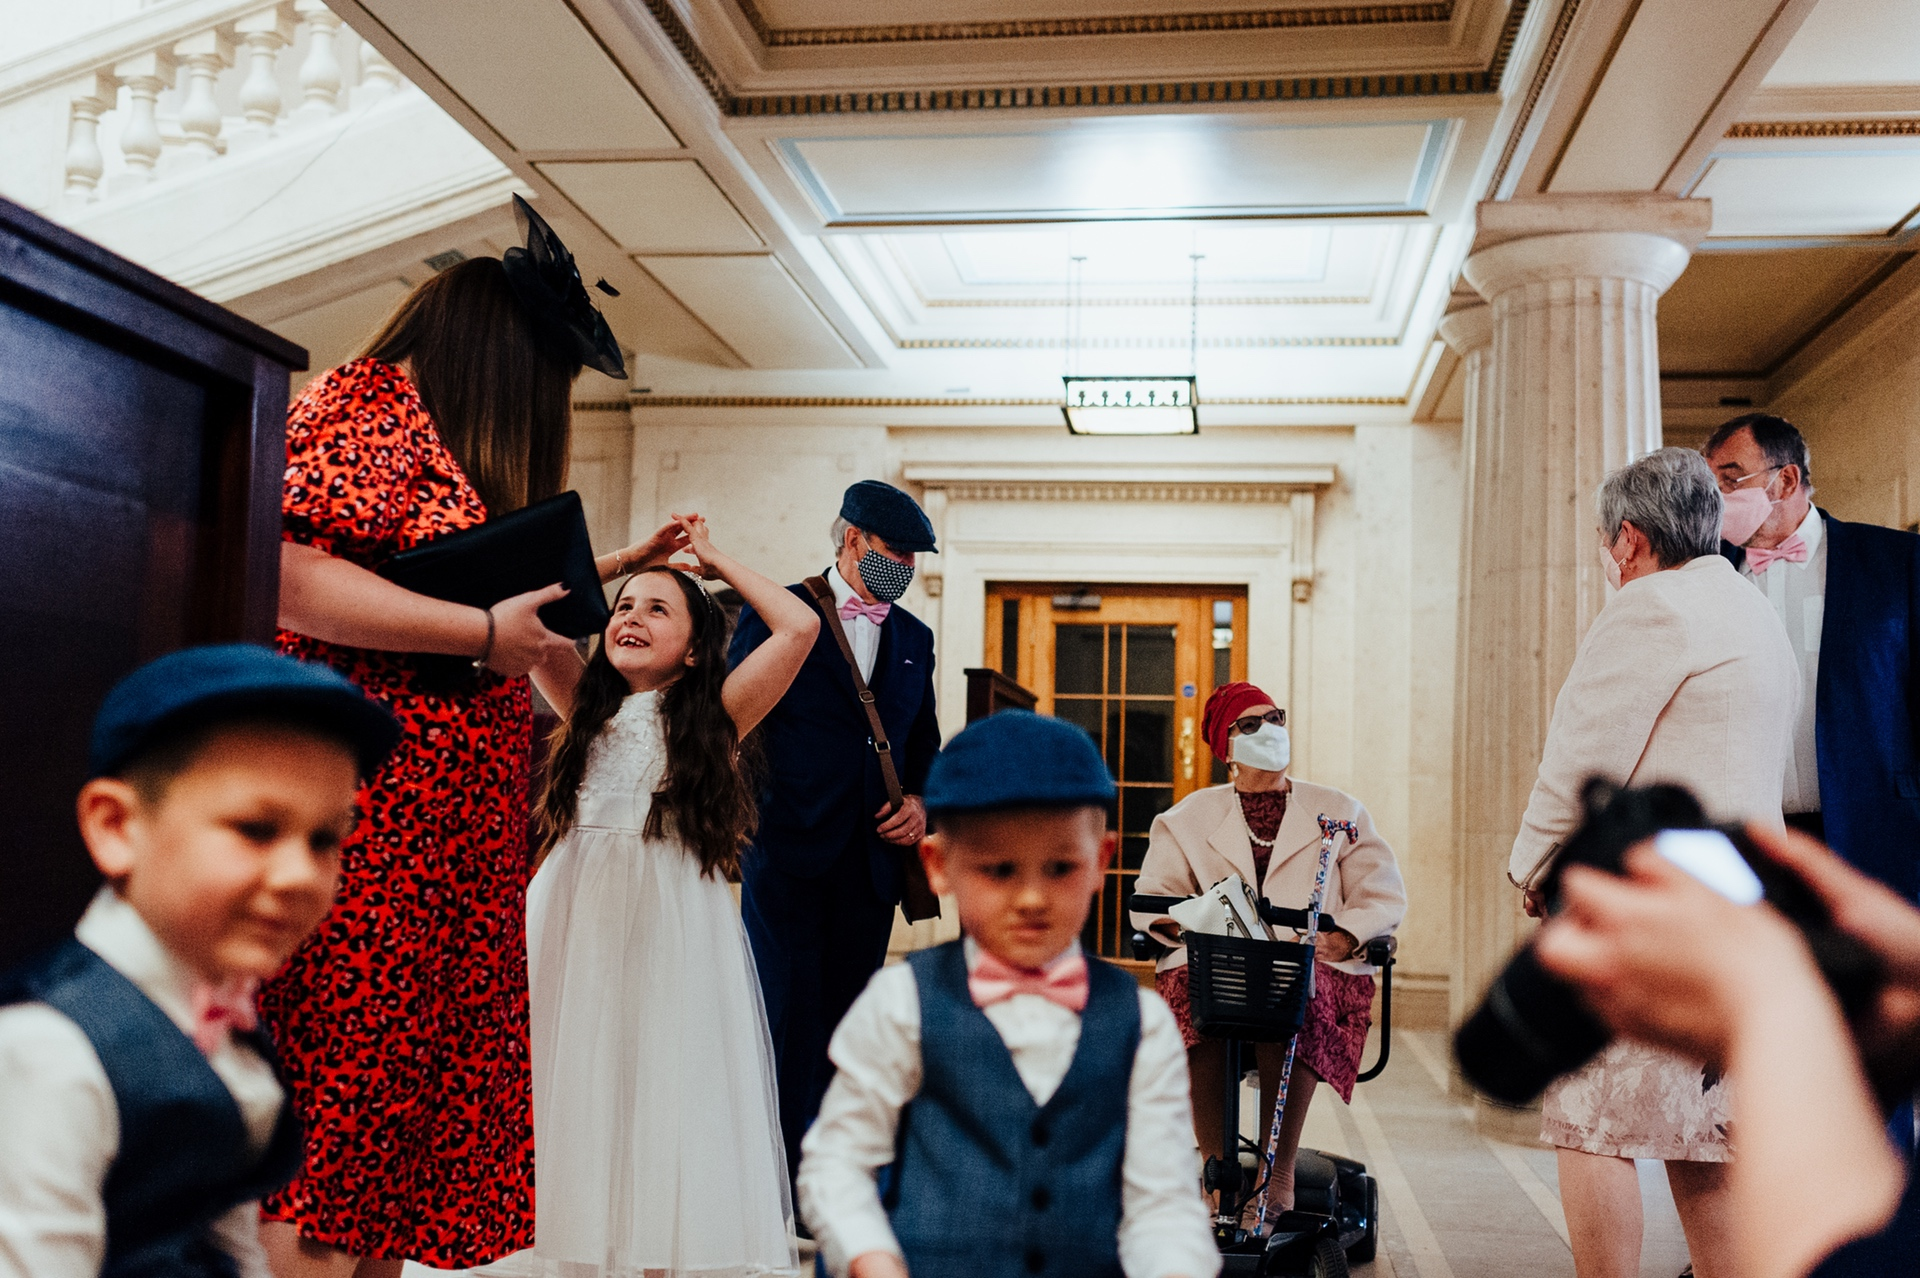 Council House, Nottingham Wedding Images | The family waits to be called upstairs for the ceremony